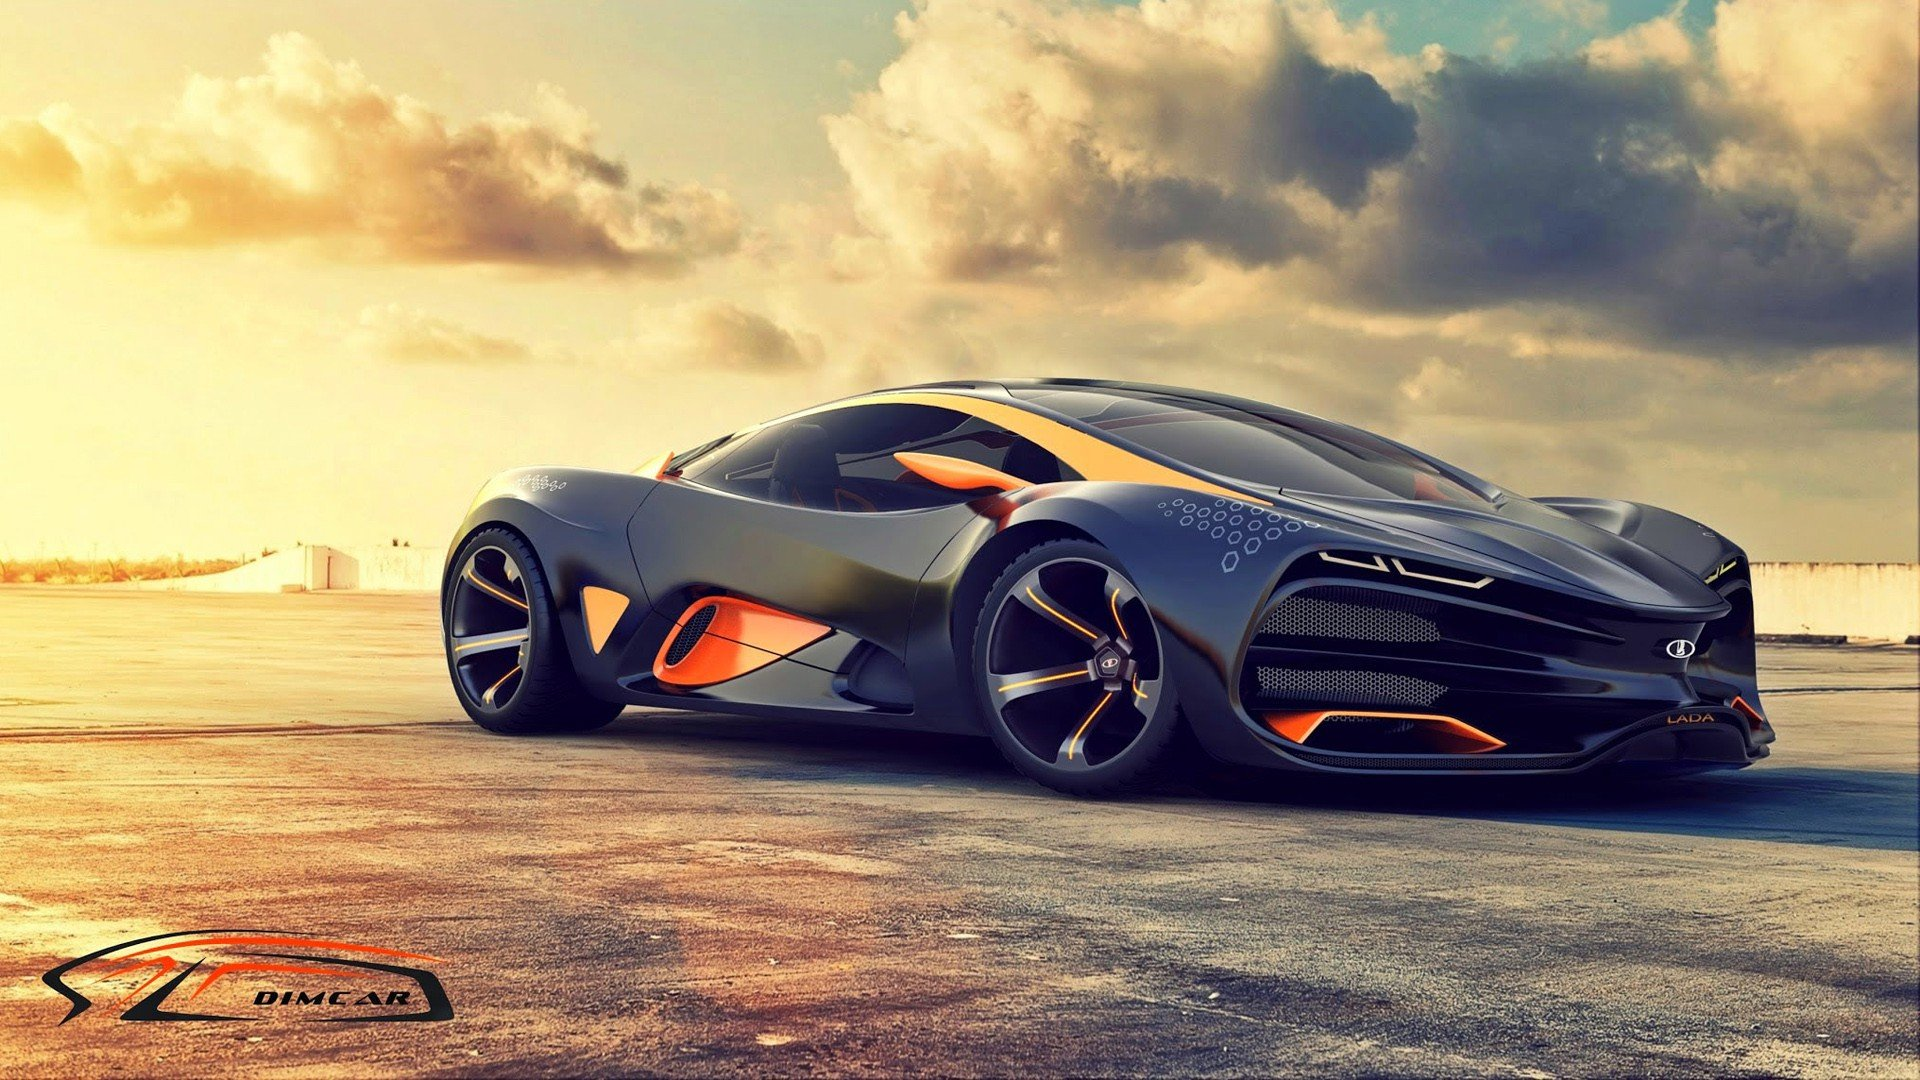 Lada Raven Supercar Hd Wallpaper